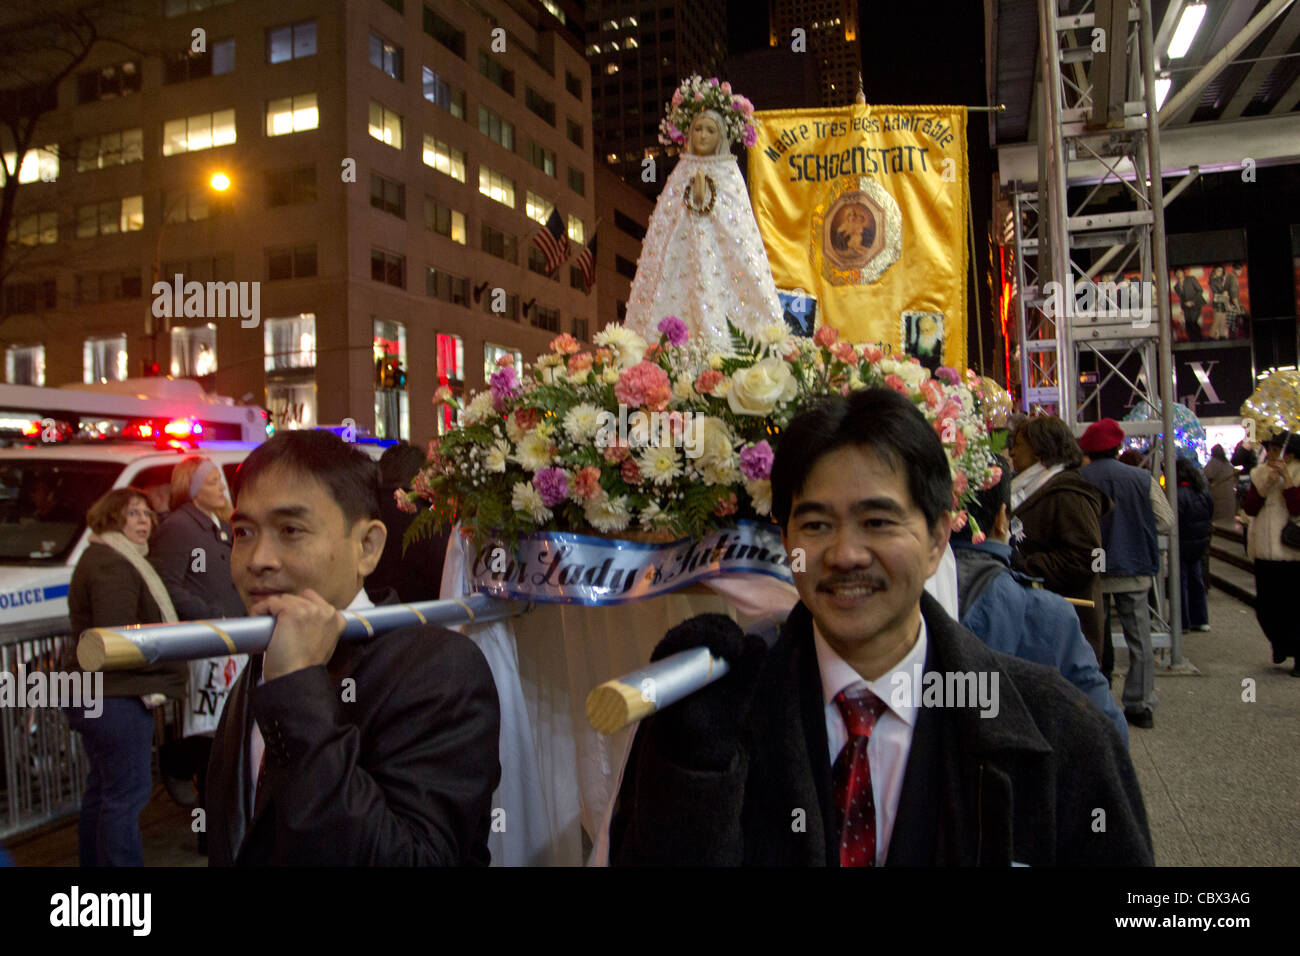 A Filipino Simbang Gabi procession heads to St. Patrick's Cathedral in New York City on the evening of December - Stock Image